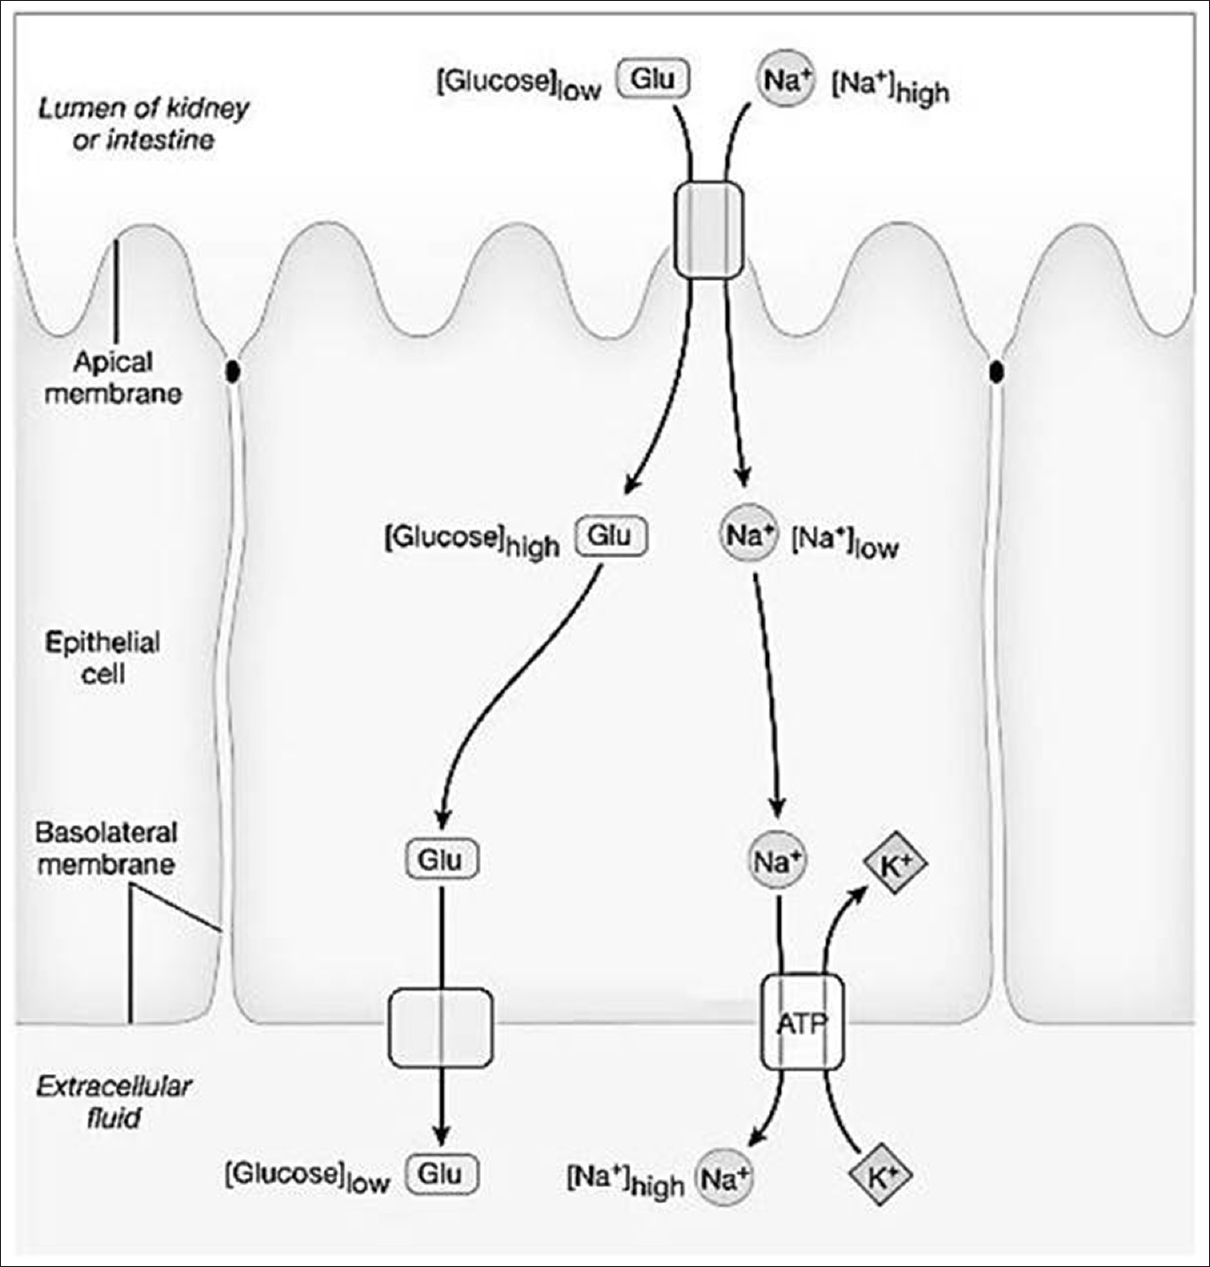 Figure 4: Transepithelial transport of glucose. Adapted from Human Physiology. An Integrated Approach. 6<sup>th</sup>ed by Silverthorn DU. Boston: Pearson Education; 2014. Figure 5.21.<sup>[5]</sup>